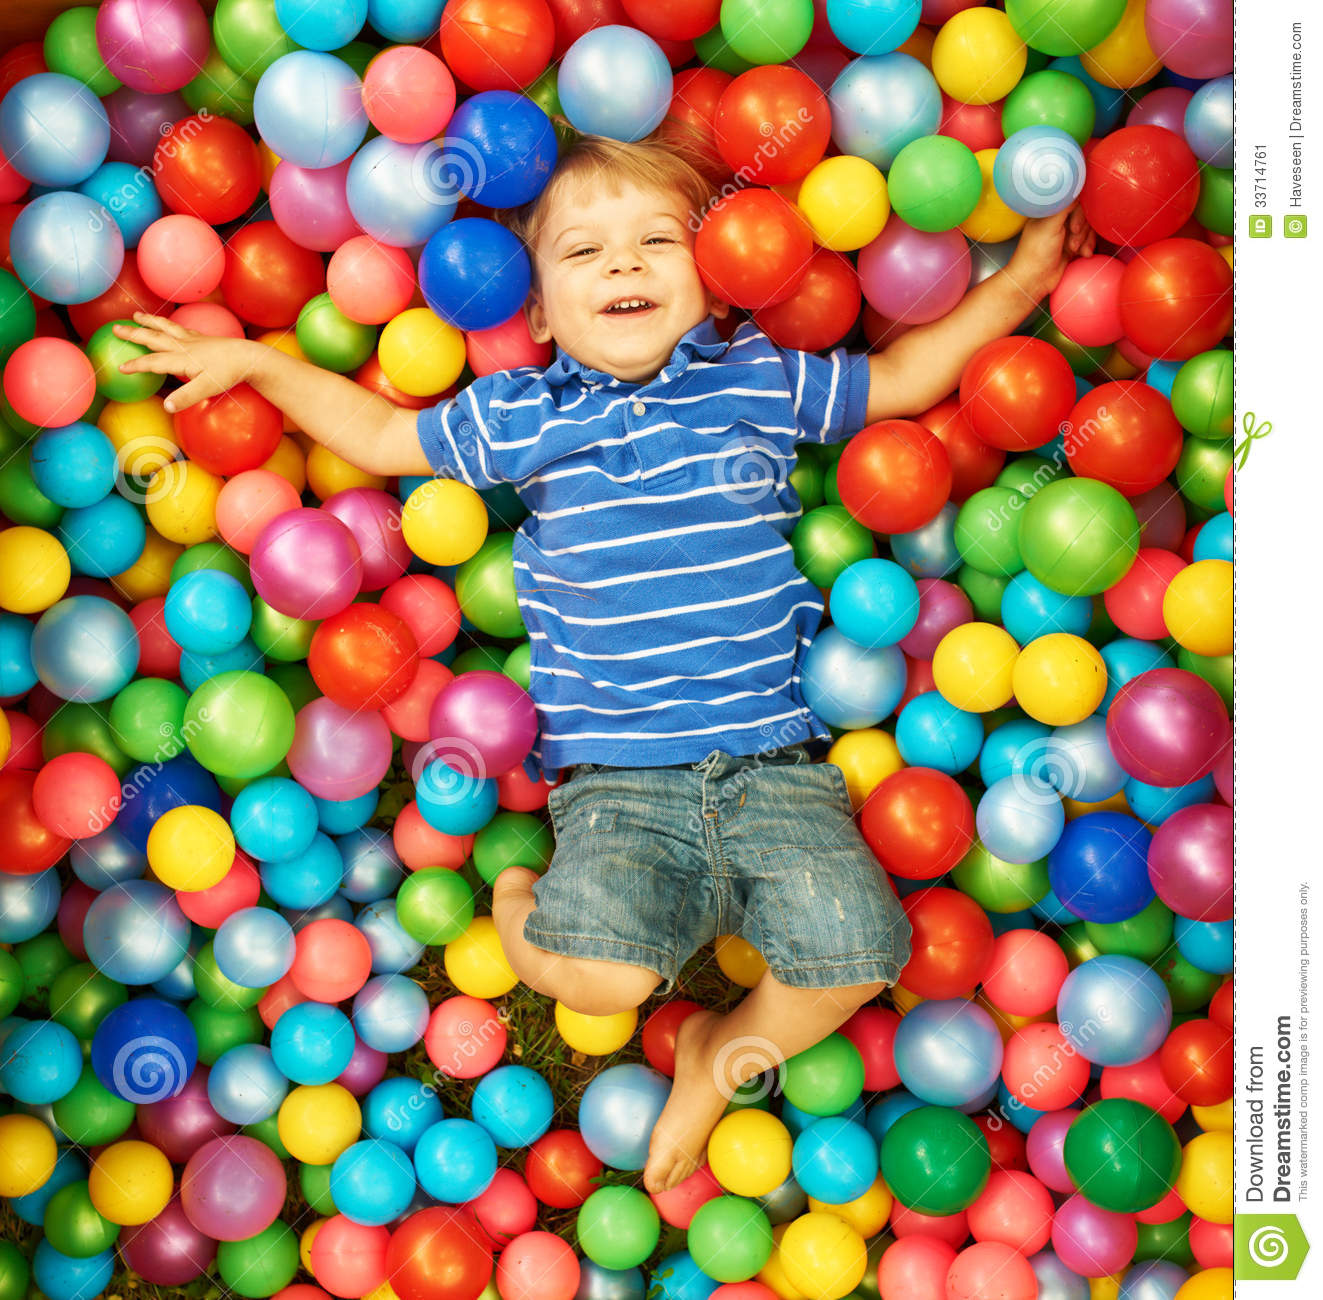 happy child playing with colorful plastic balls stock image image 33714761. Black Bedroom Furniture Sets. Home Design Ideas